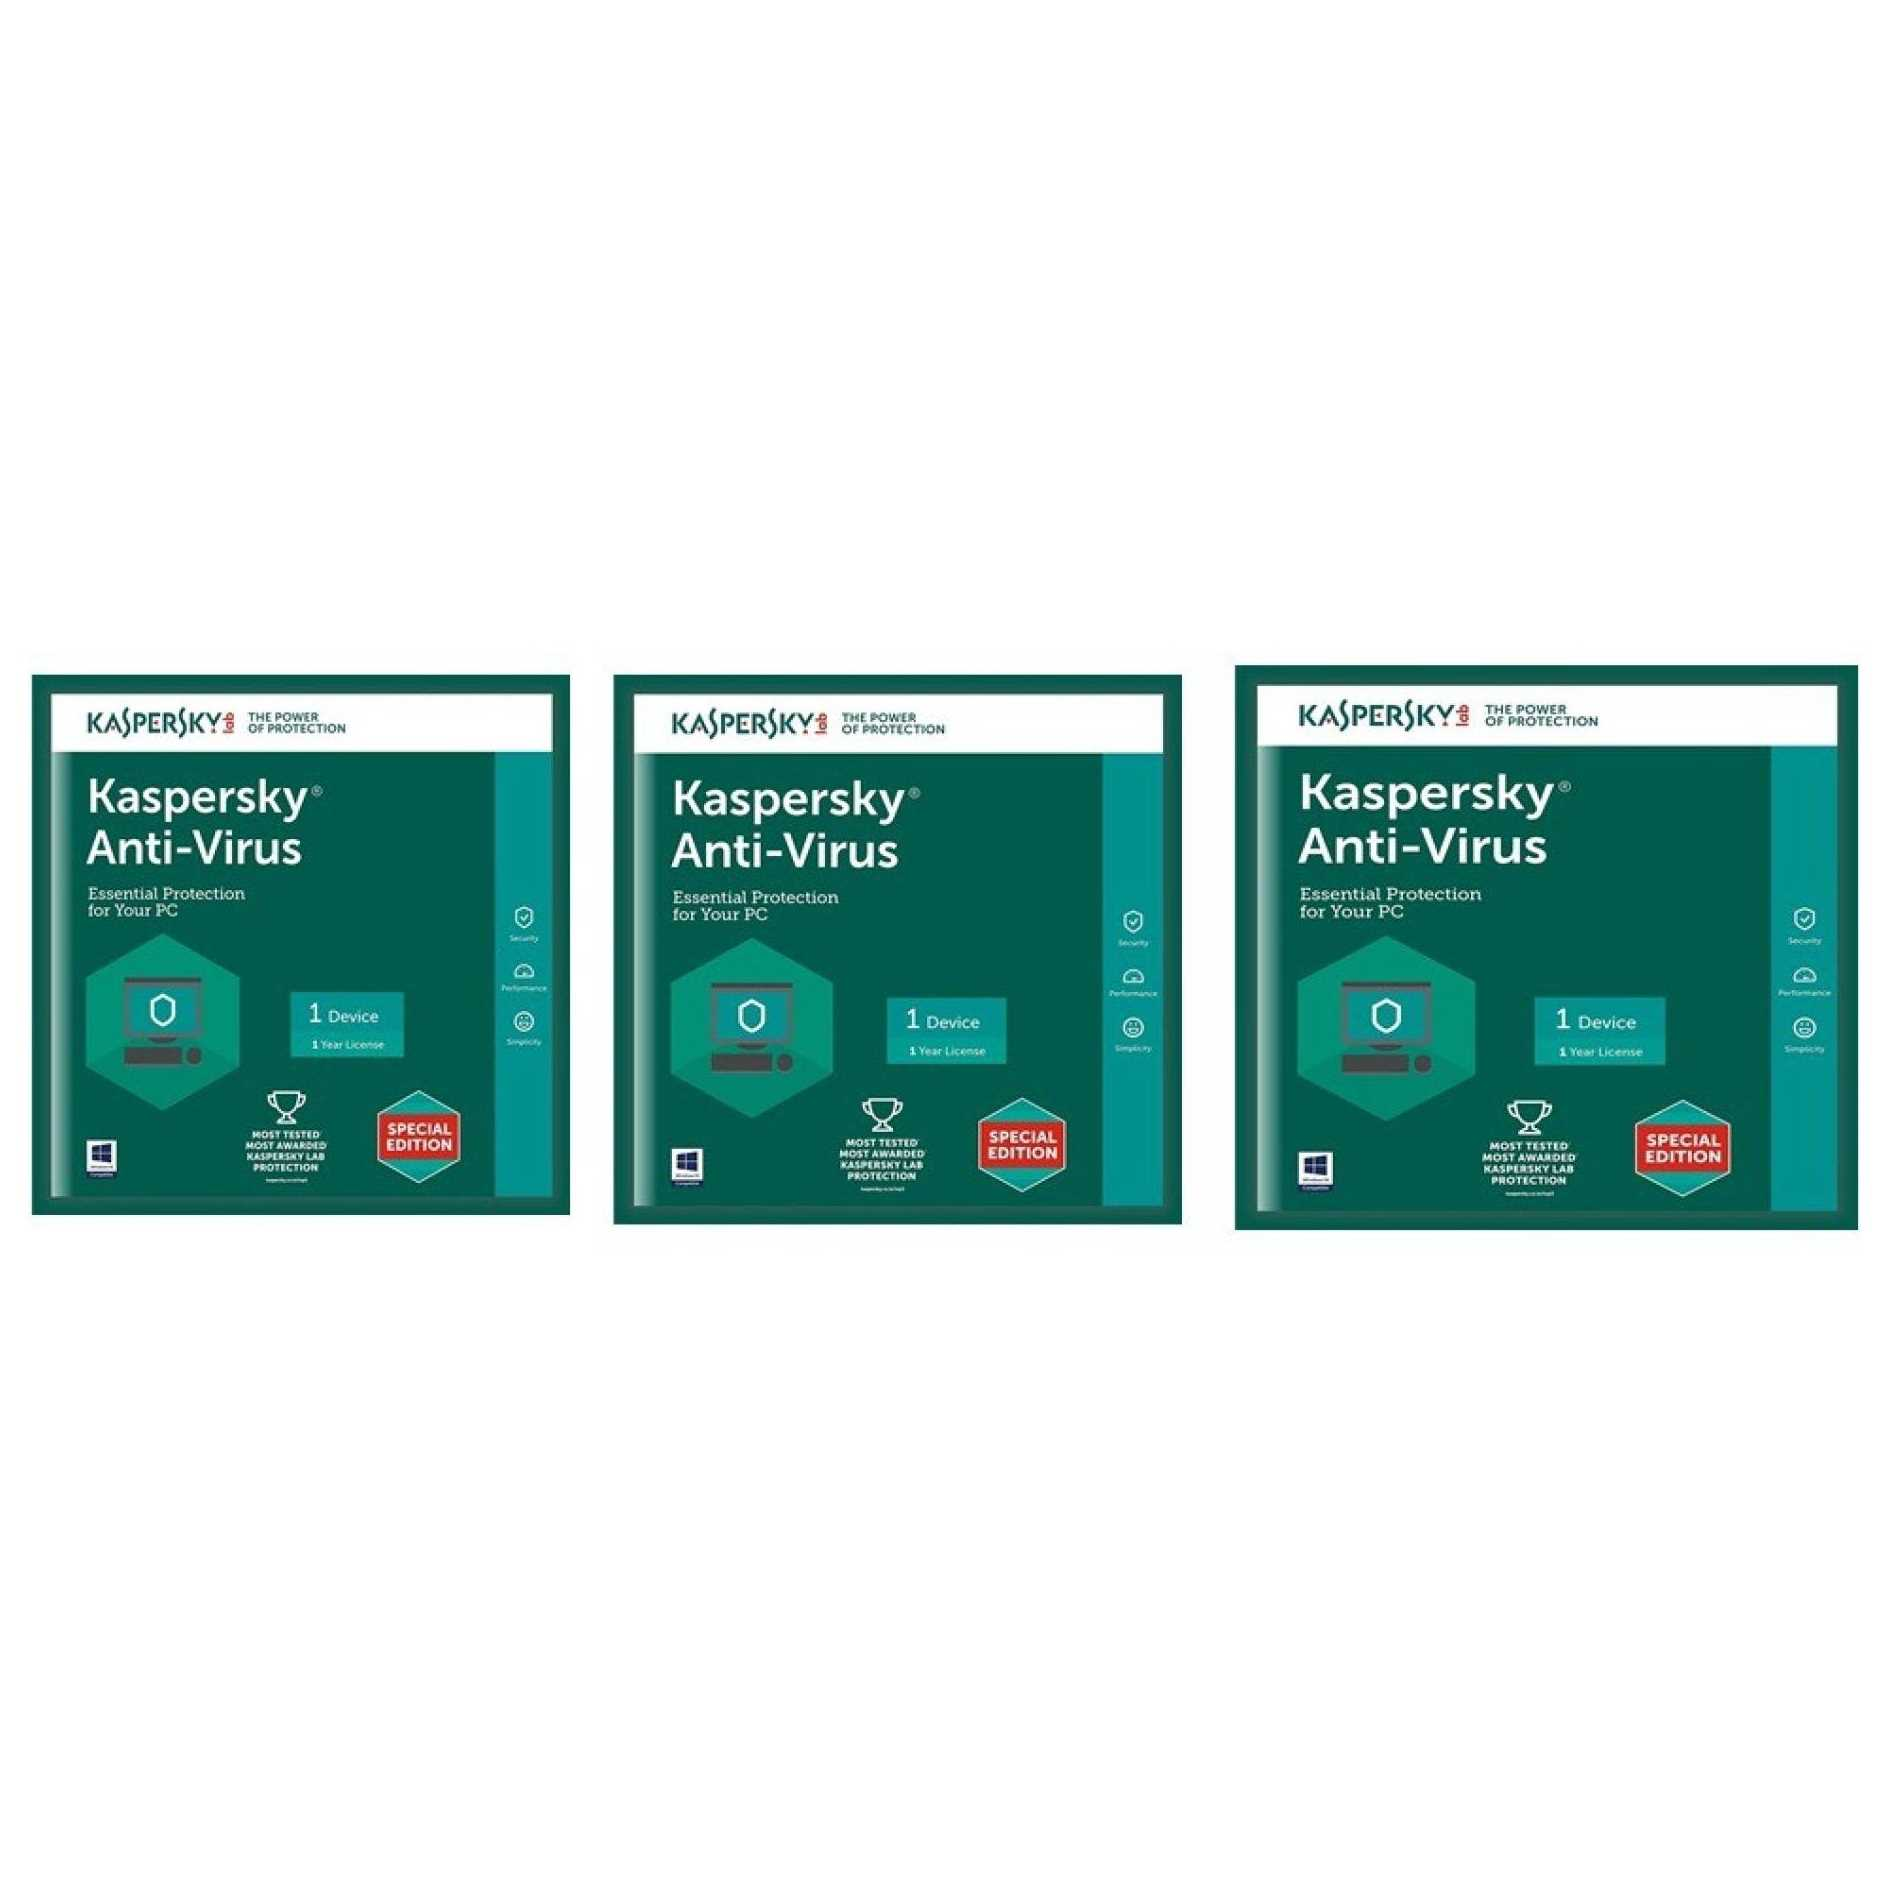 Kaspersky Antivirus And Security Software Price List {11 Aug 2019